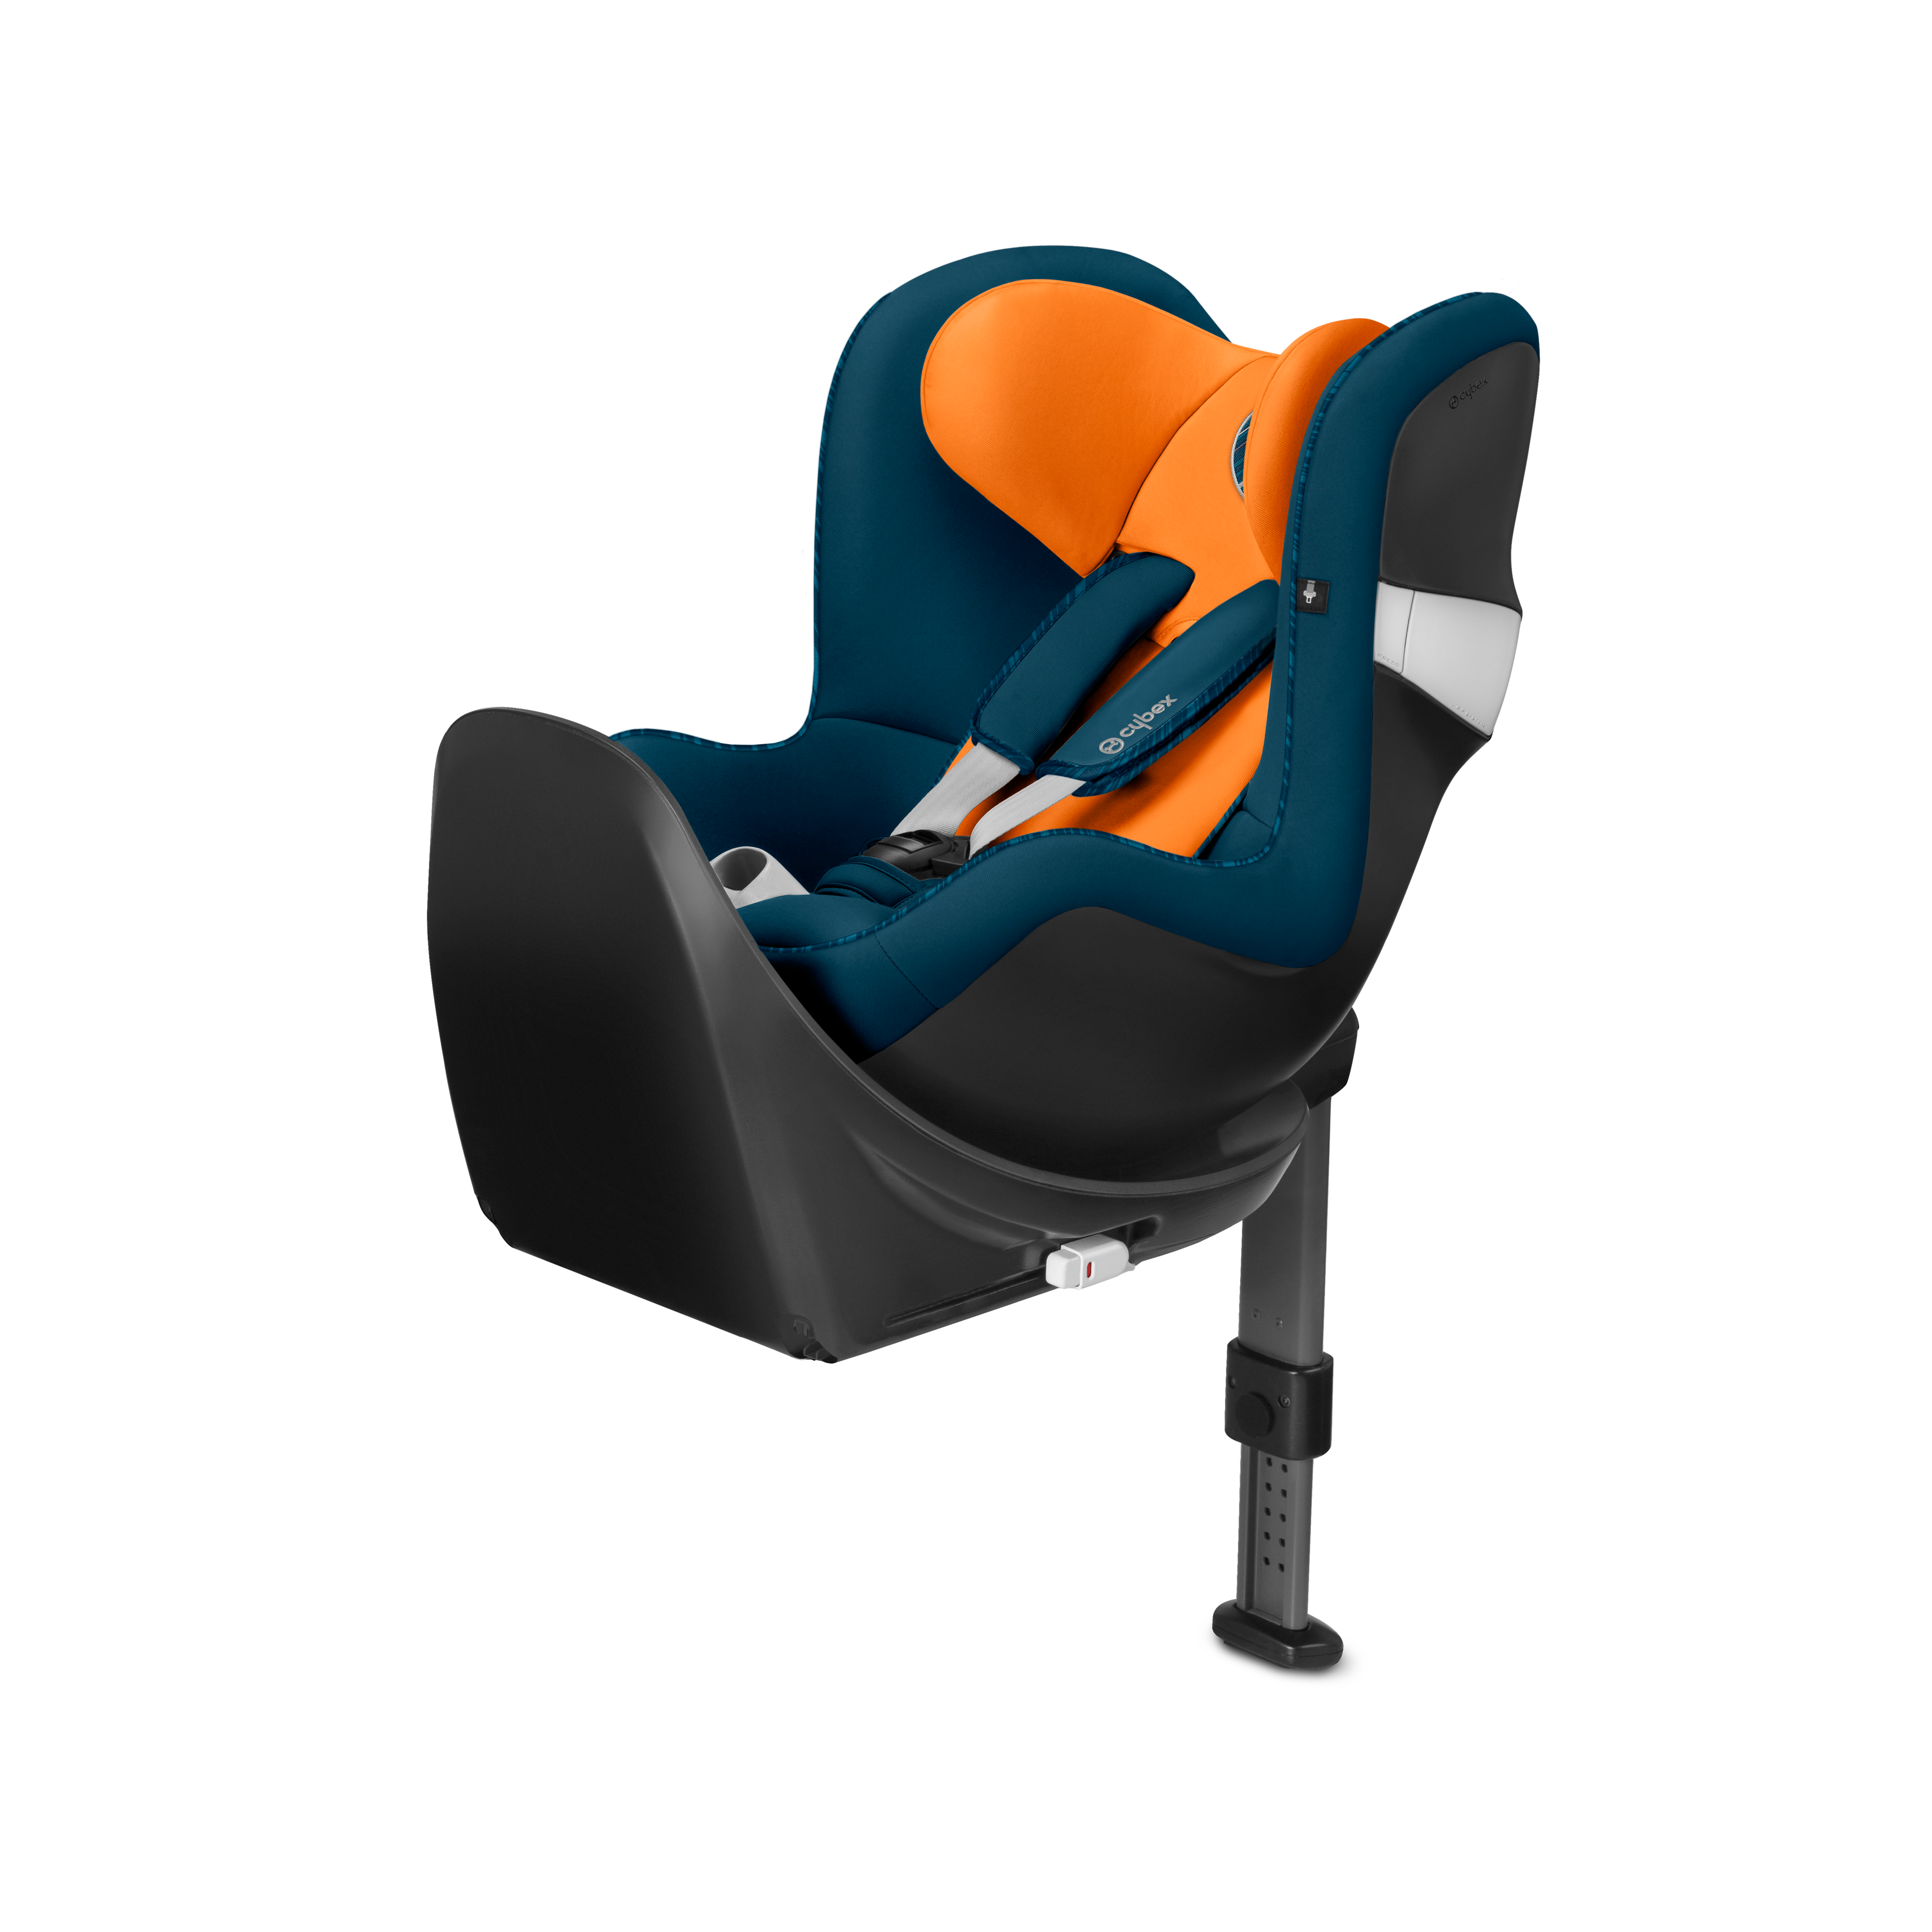 Seat Birth To From Approx4 M2 SizeA Sirona Years I Car qUSGjLzMVp